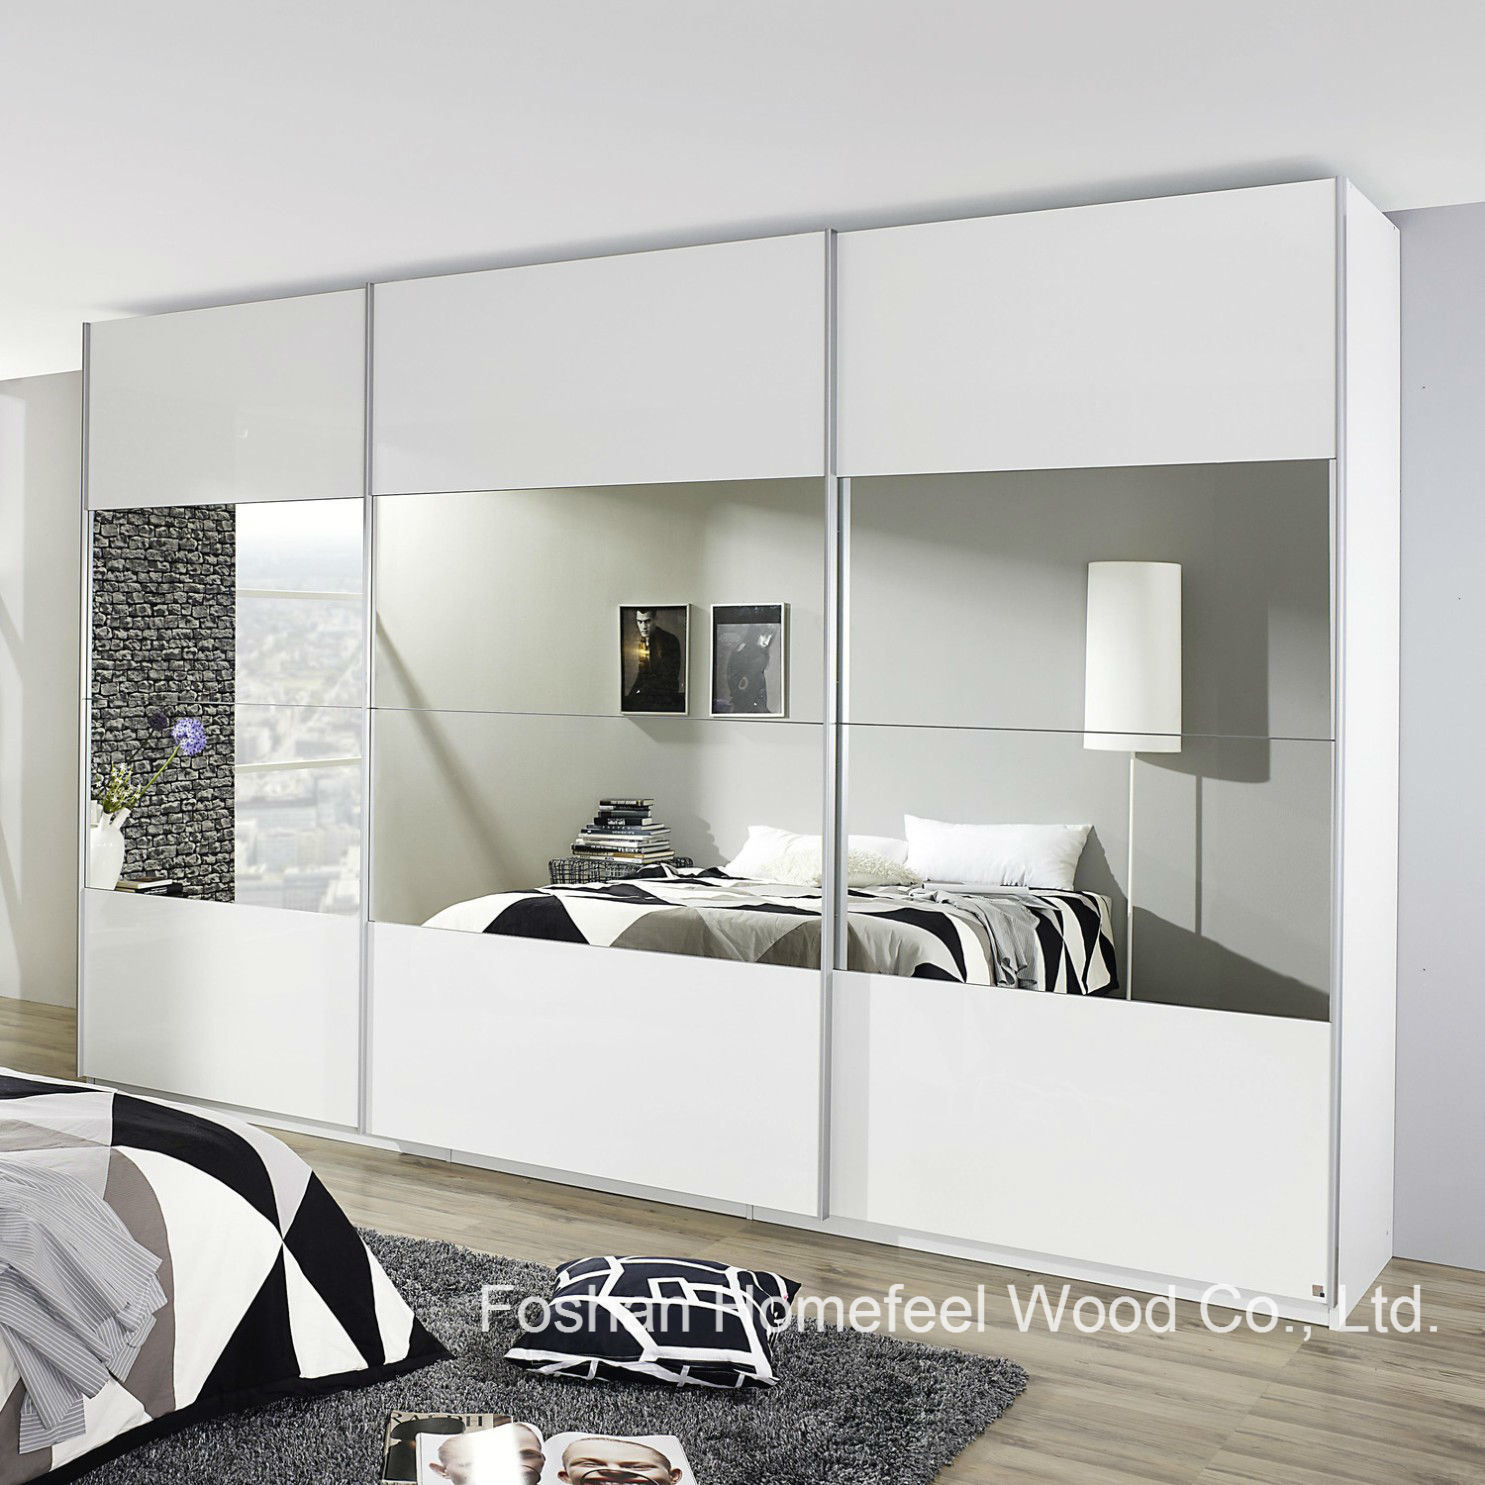 China Bedroom Furniture 3 Door Mirrored Sliding Wardrobe Dresser Wb28 Photos Pictures Made In China Com